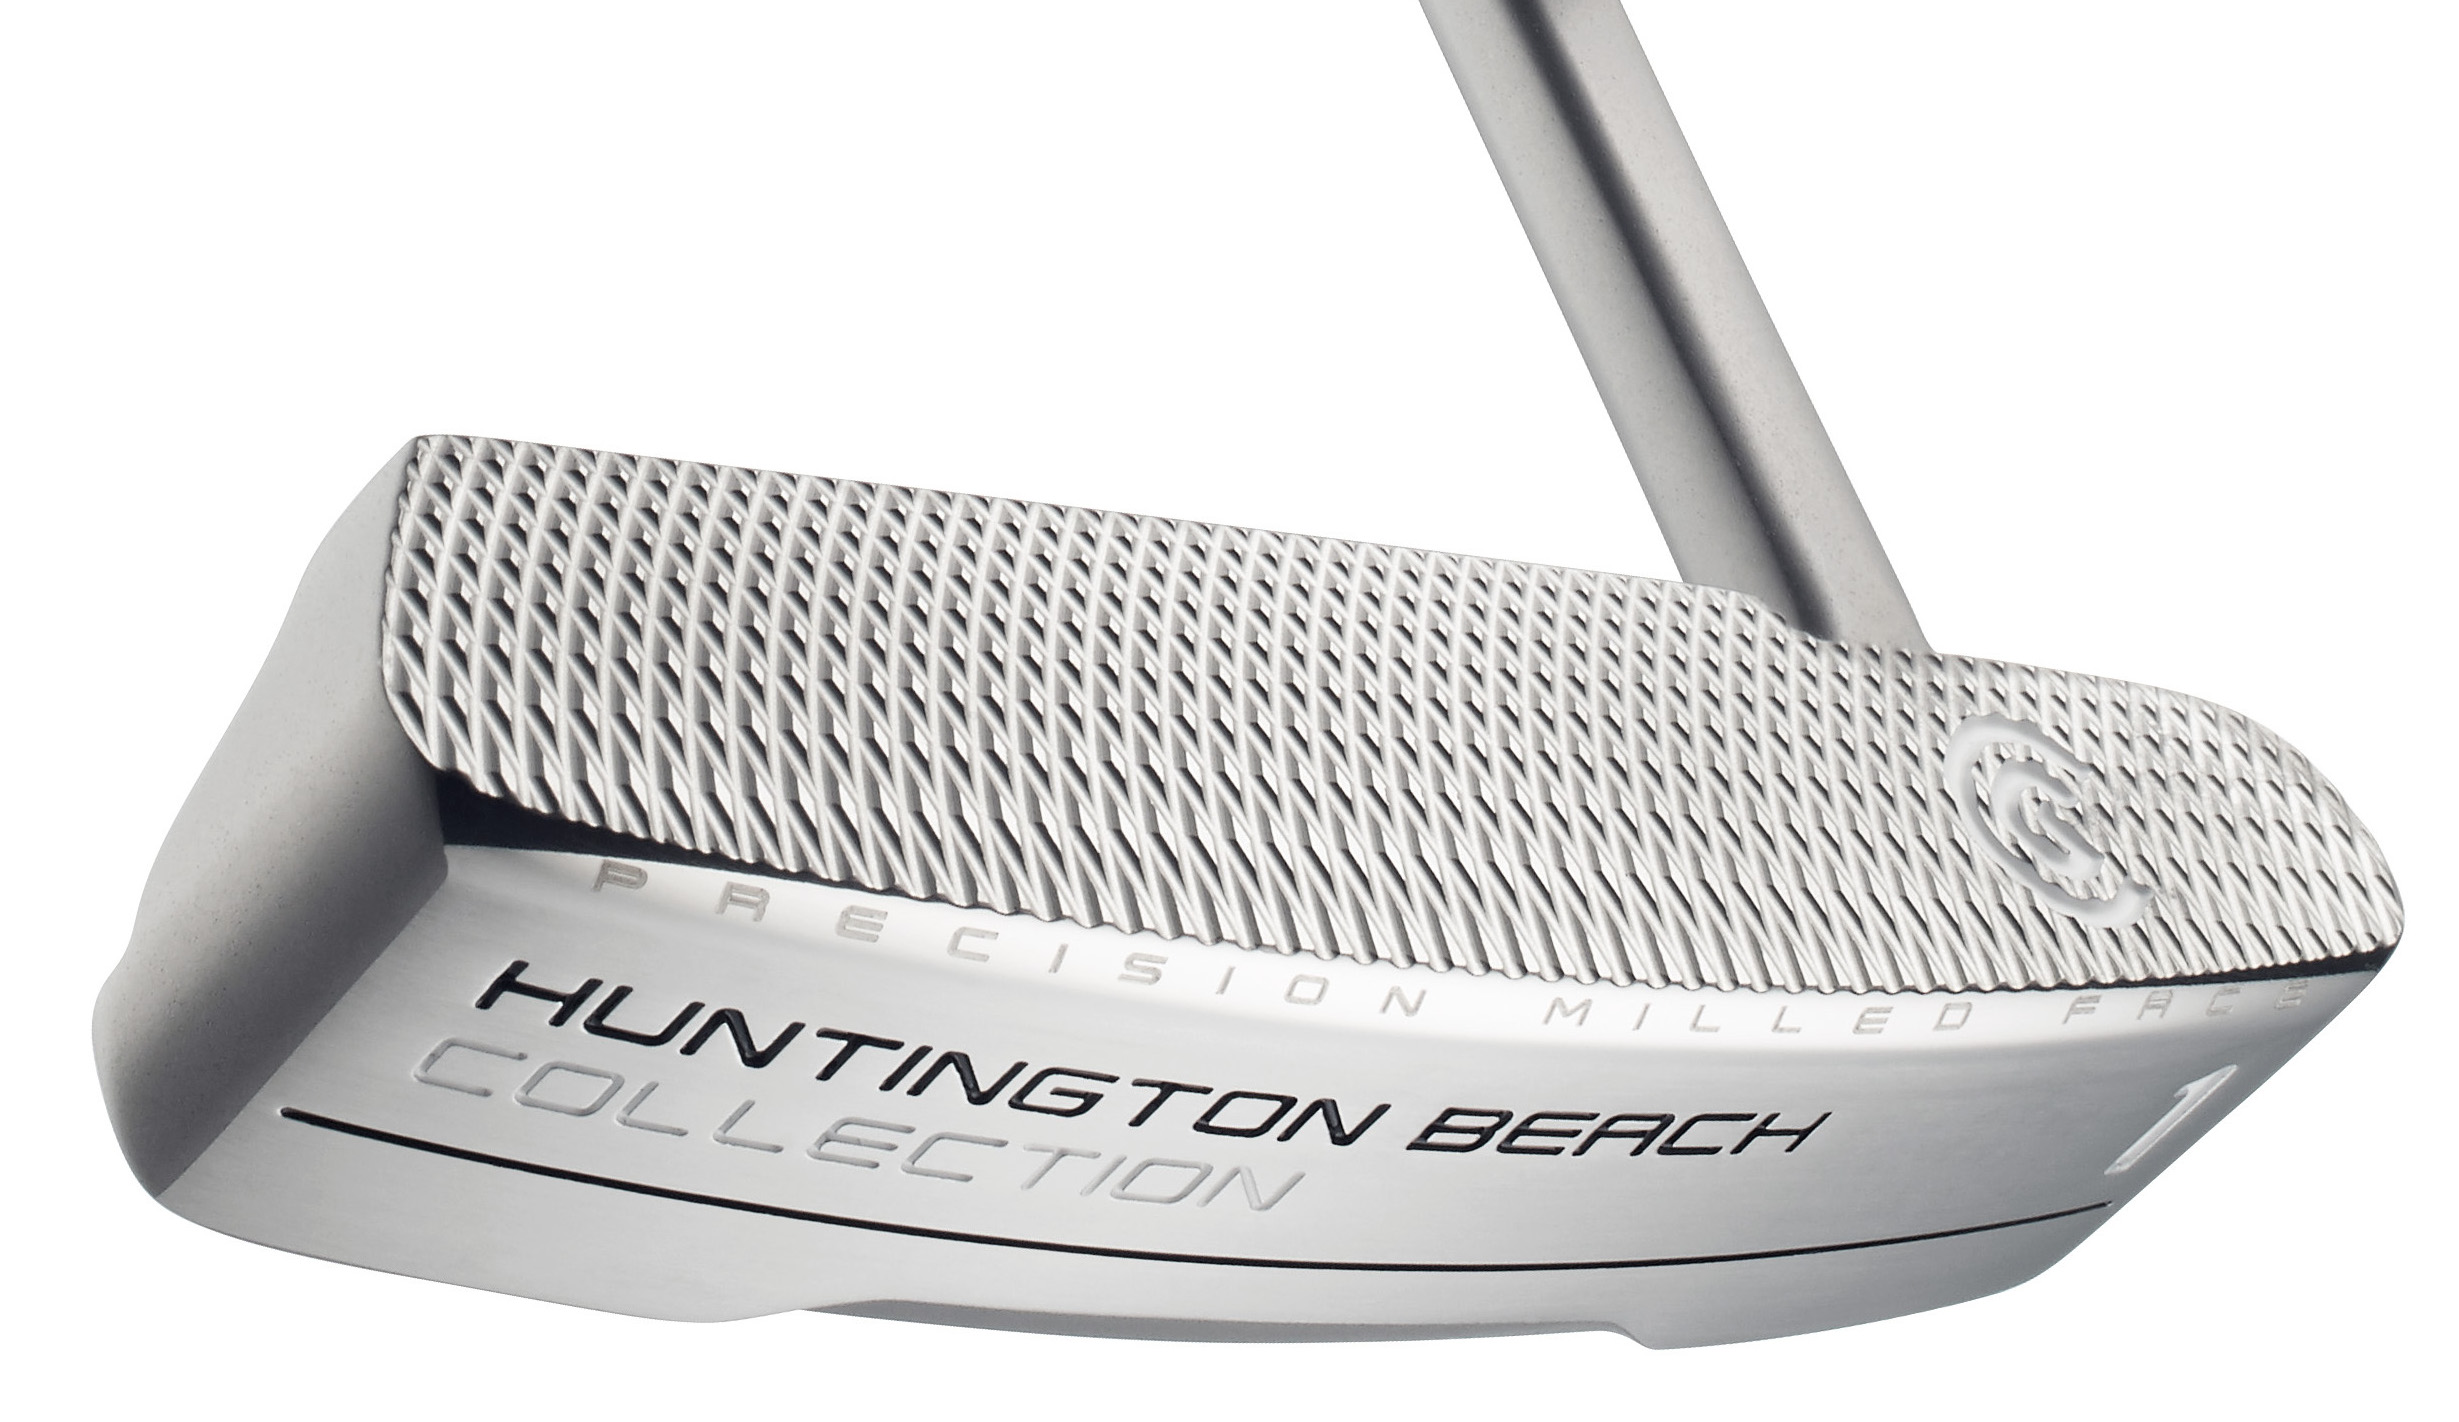 Cleveland Huntington Beach putters arrive